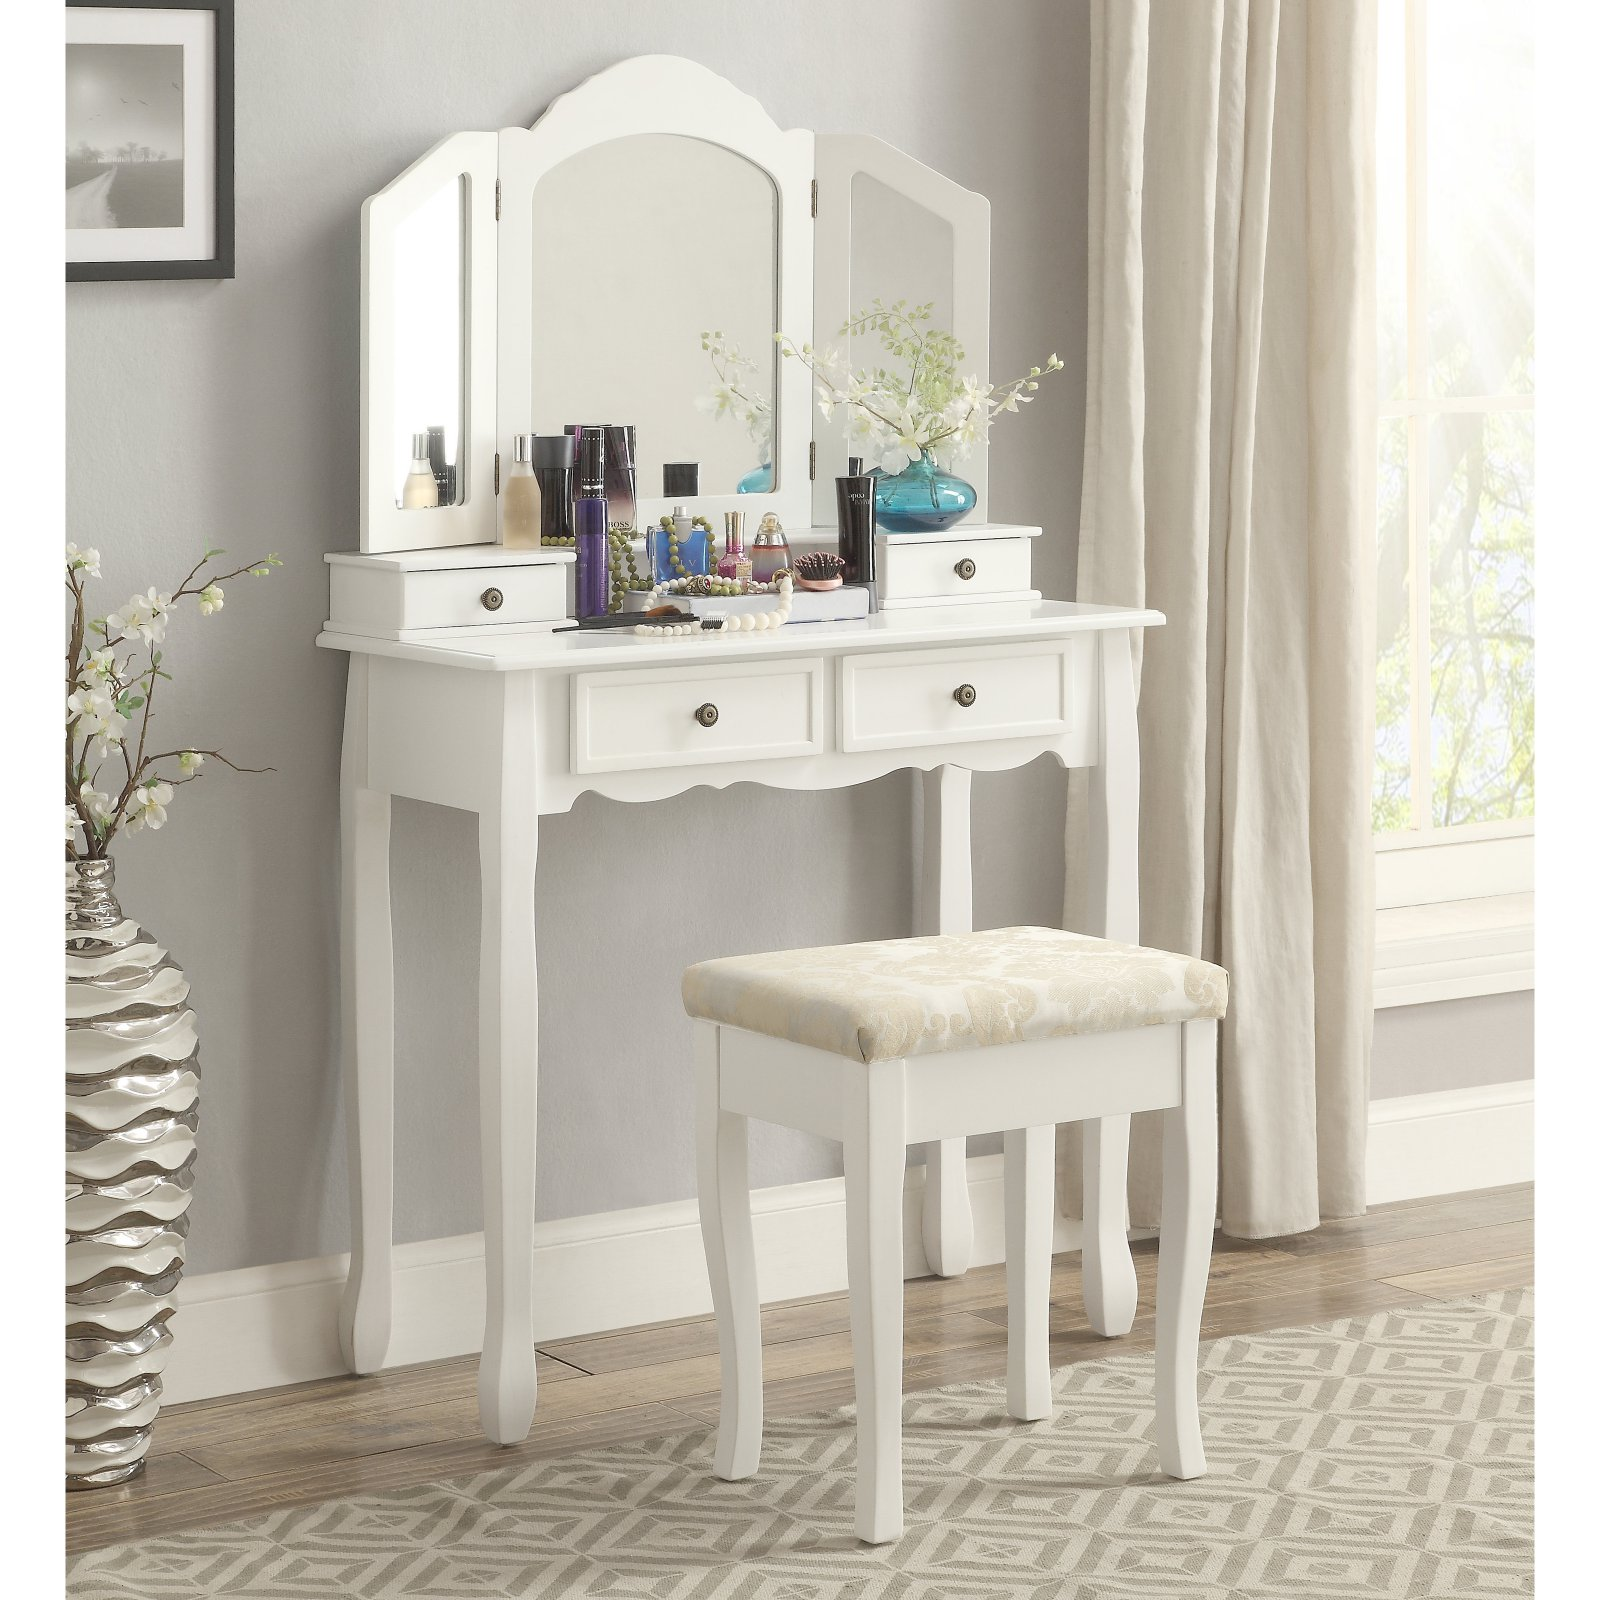 Roundhill Furniture Sanlo White Wooden Vanity, Make Up Table and Stool Set by Roundhill Furniture Inc